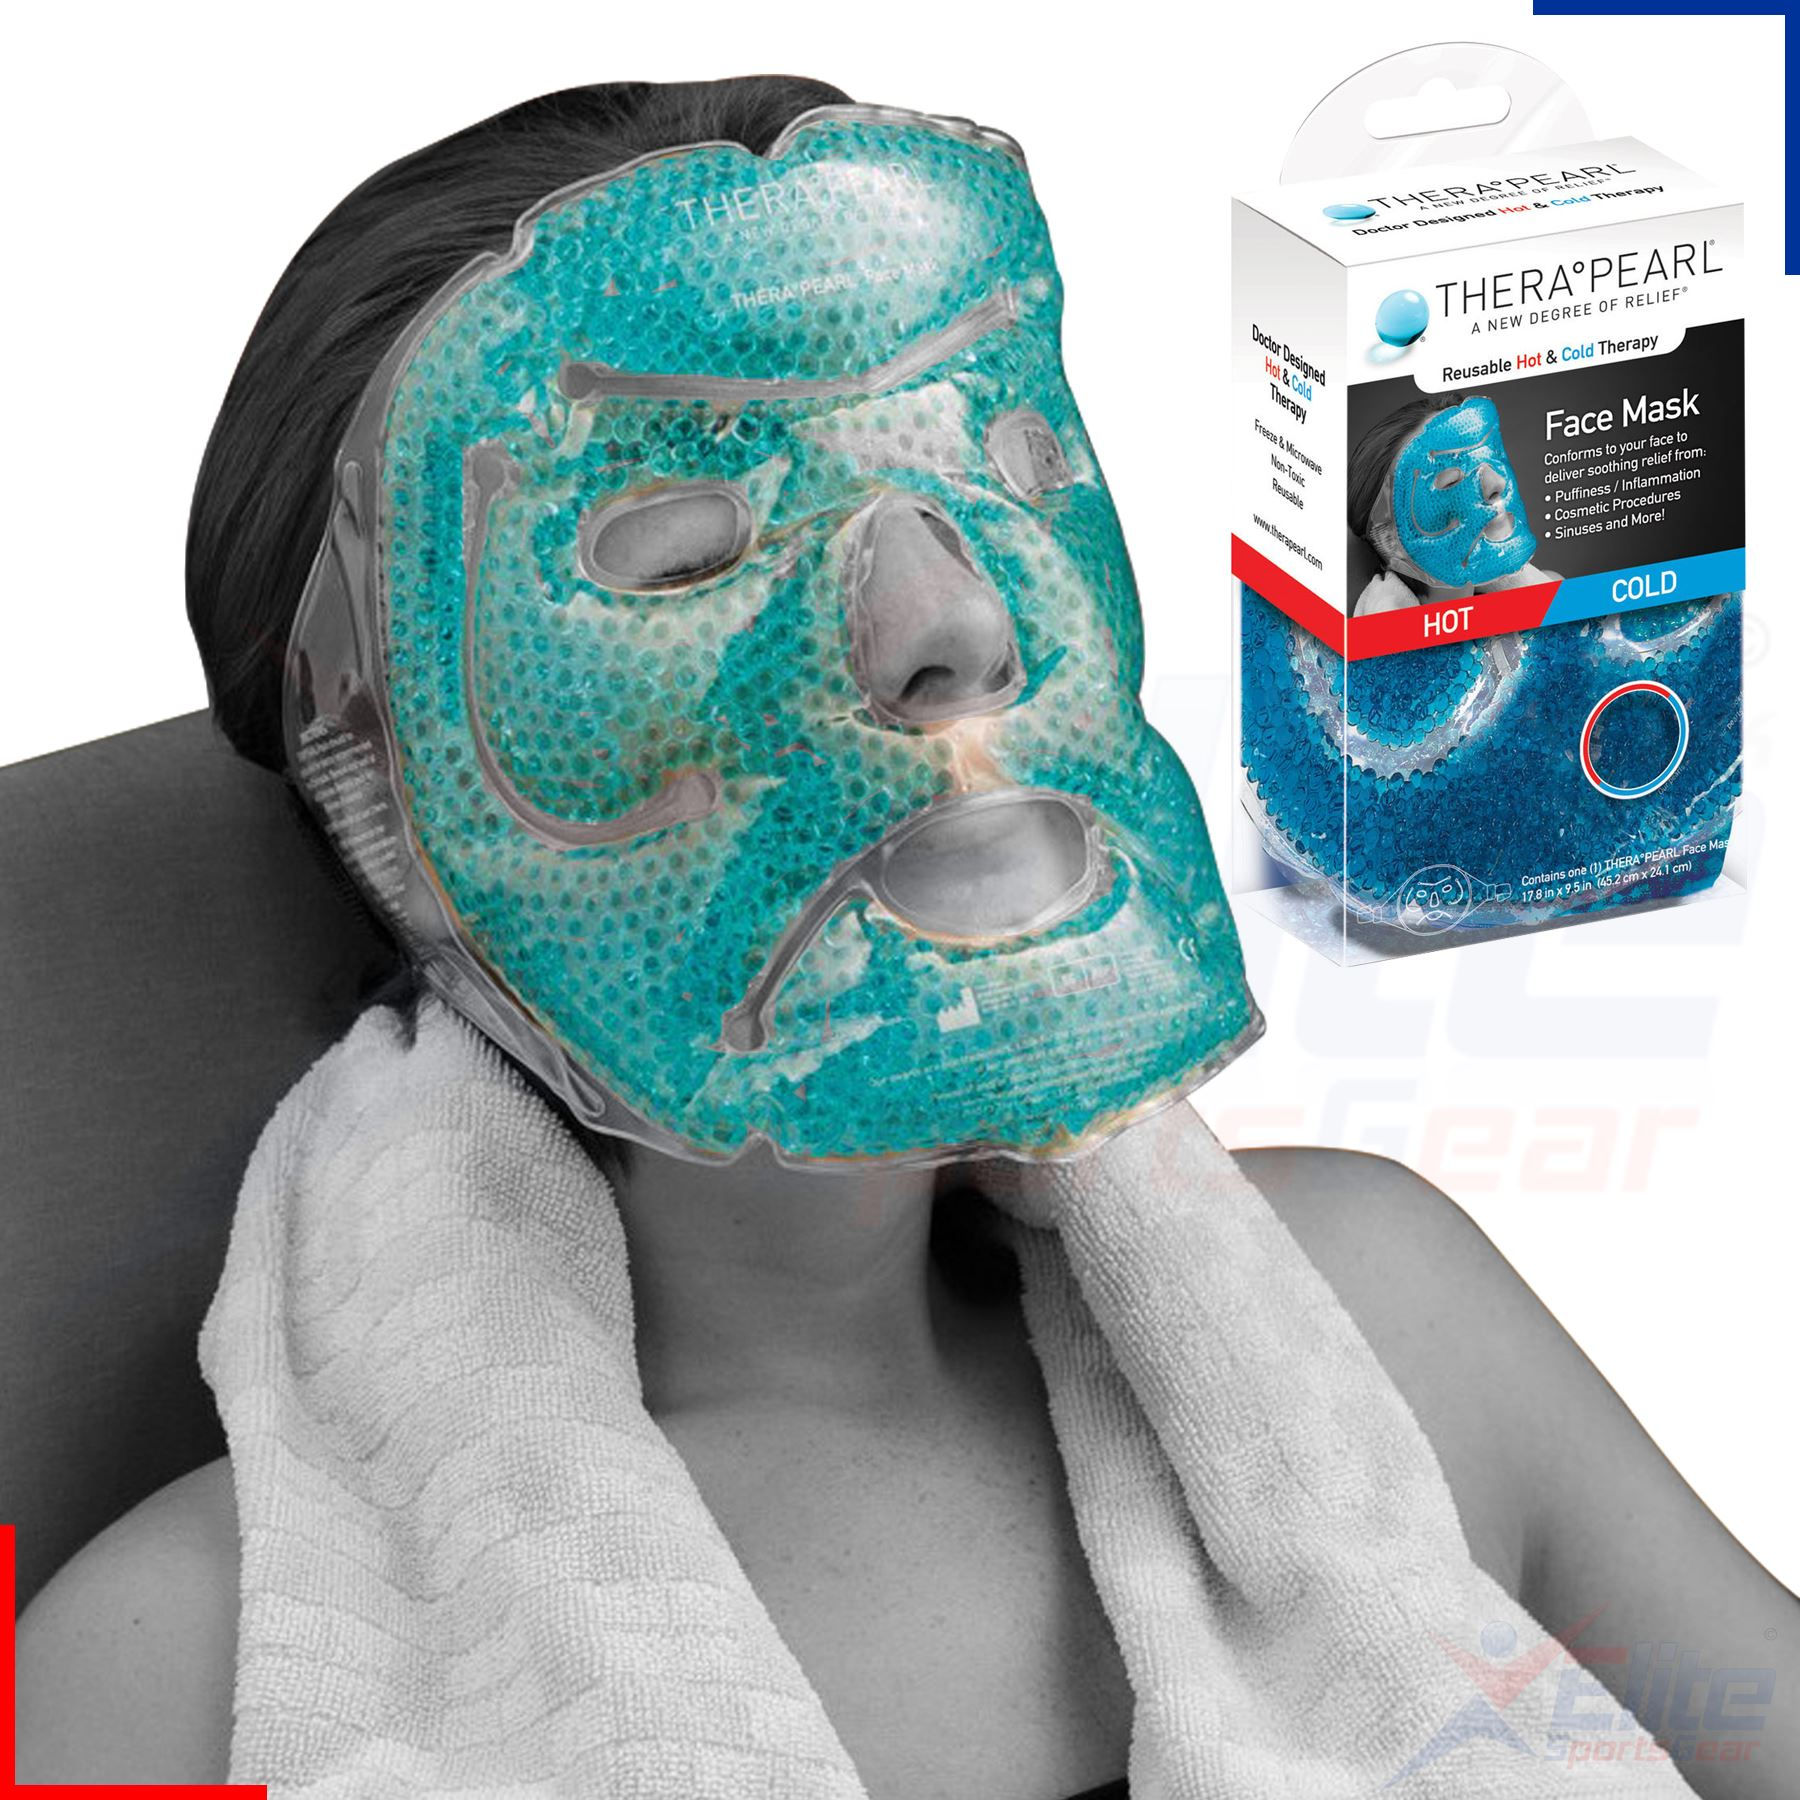 cold face mask